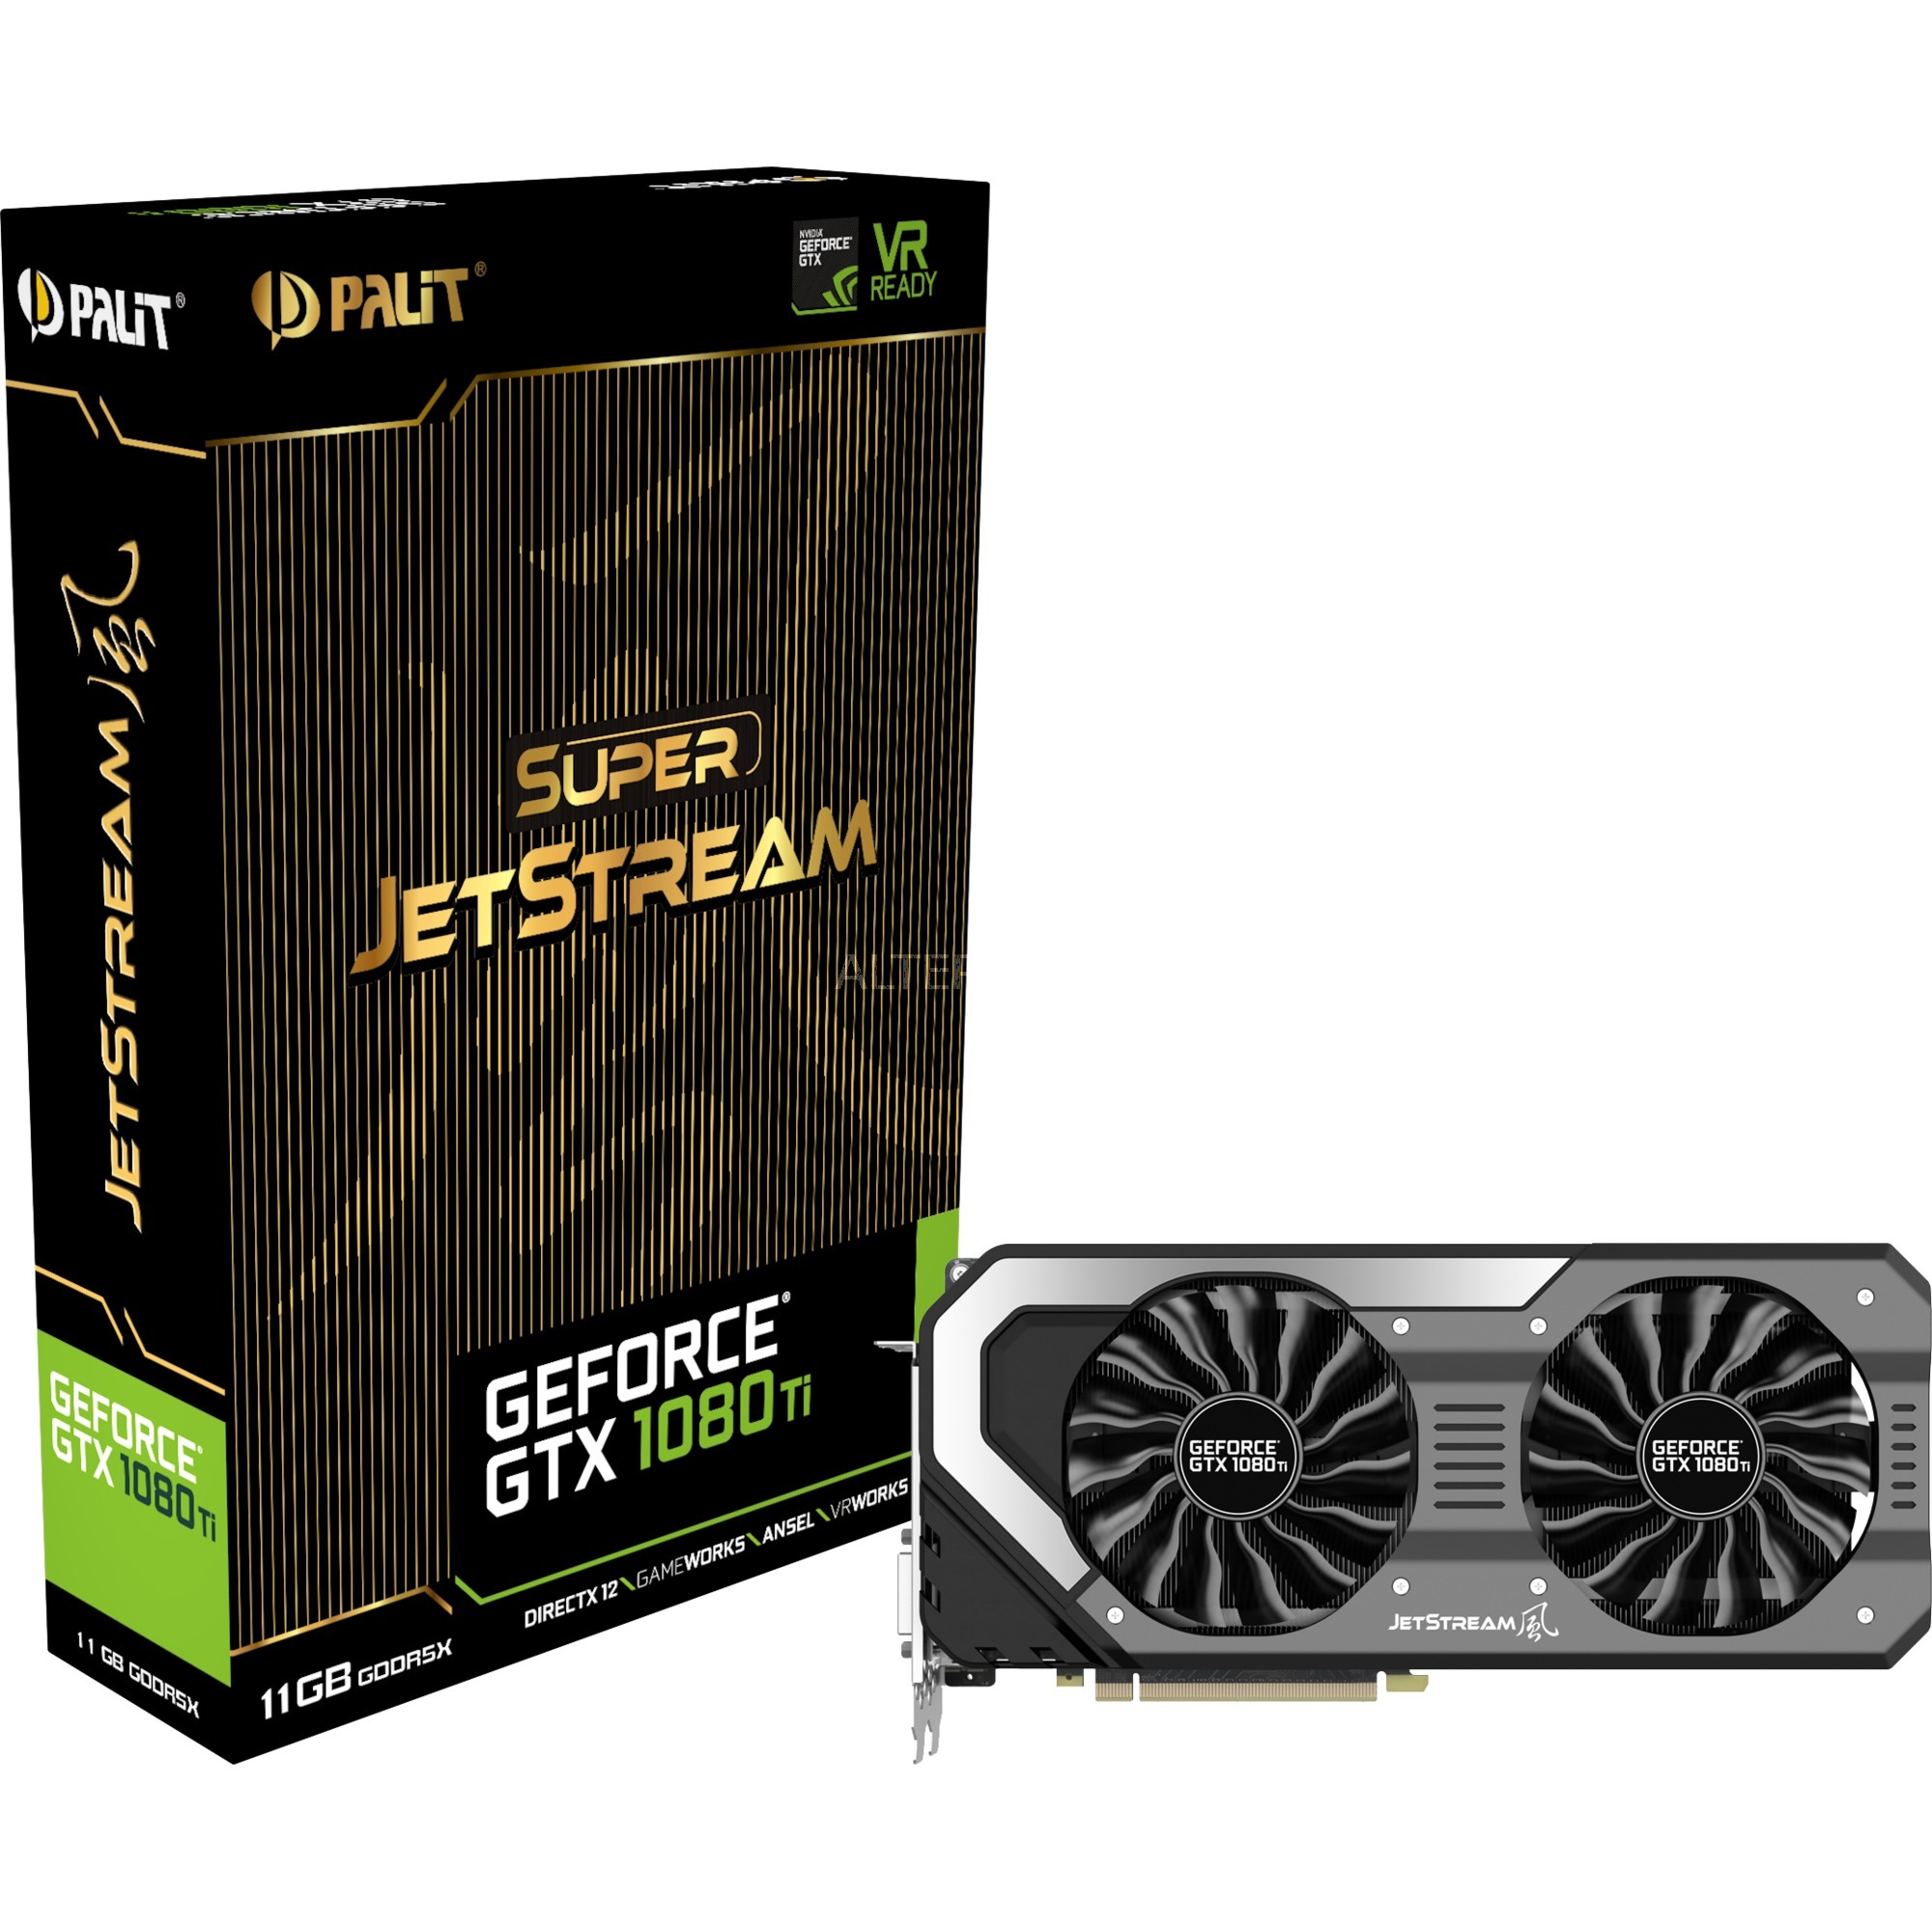 GeForce GTX 1080 Ti Super Jetstream, Carte graphique